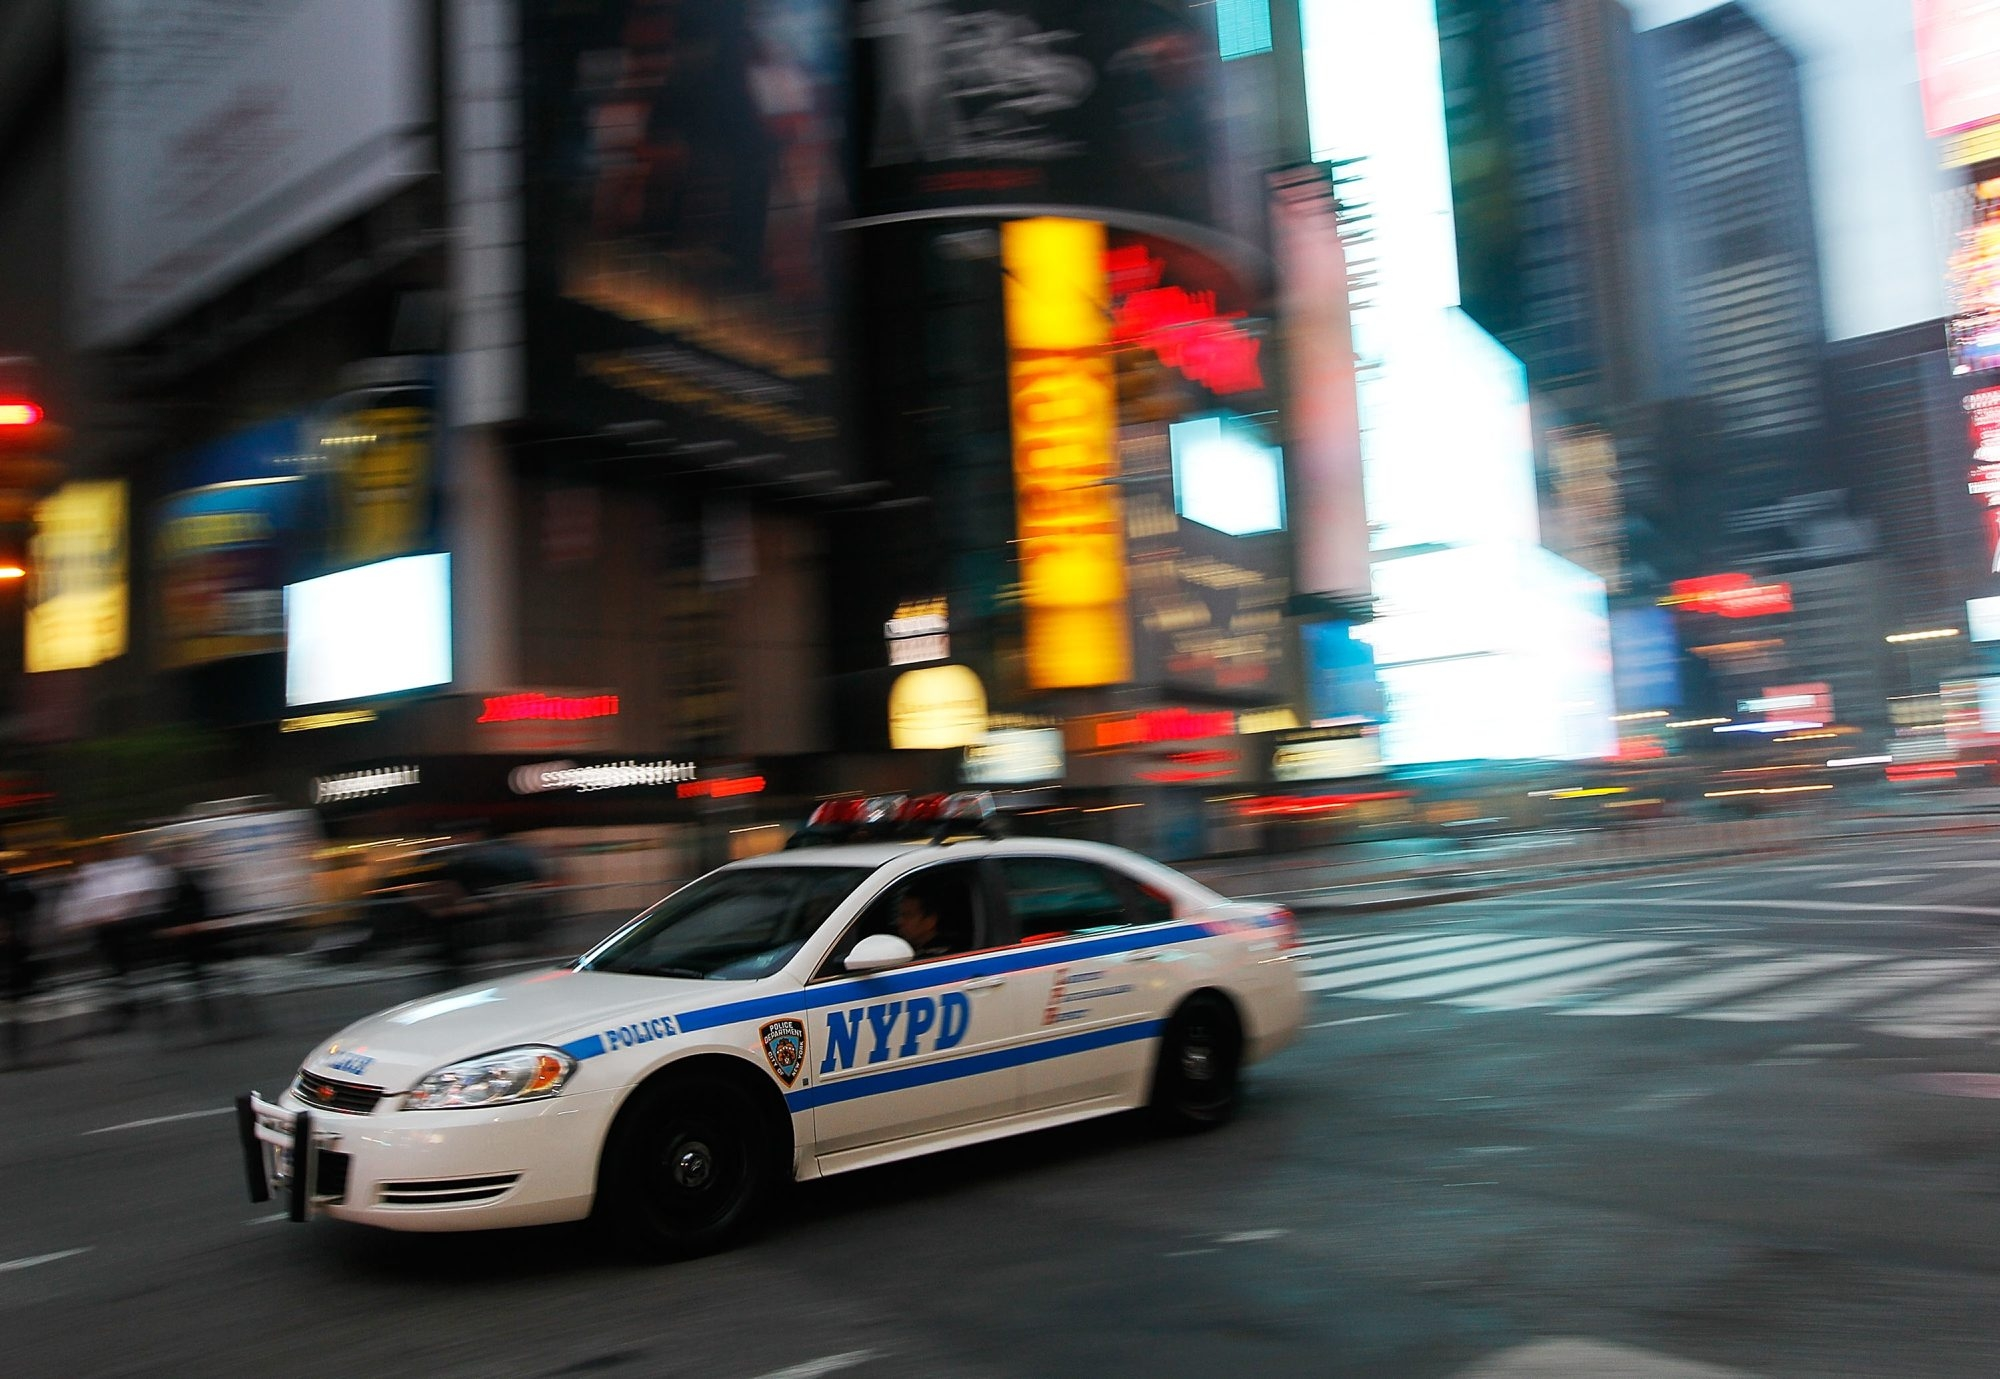 Steve Osborne keeps a sense of humor as he writes about his 20 years as a New York City police officer.